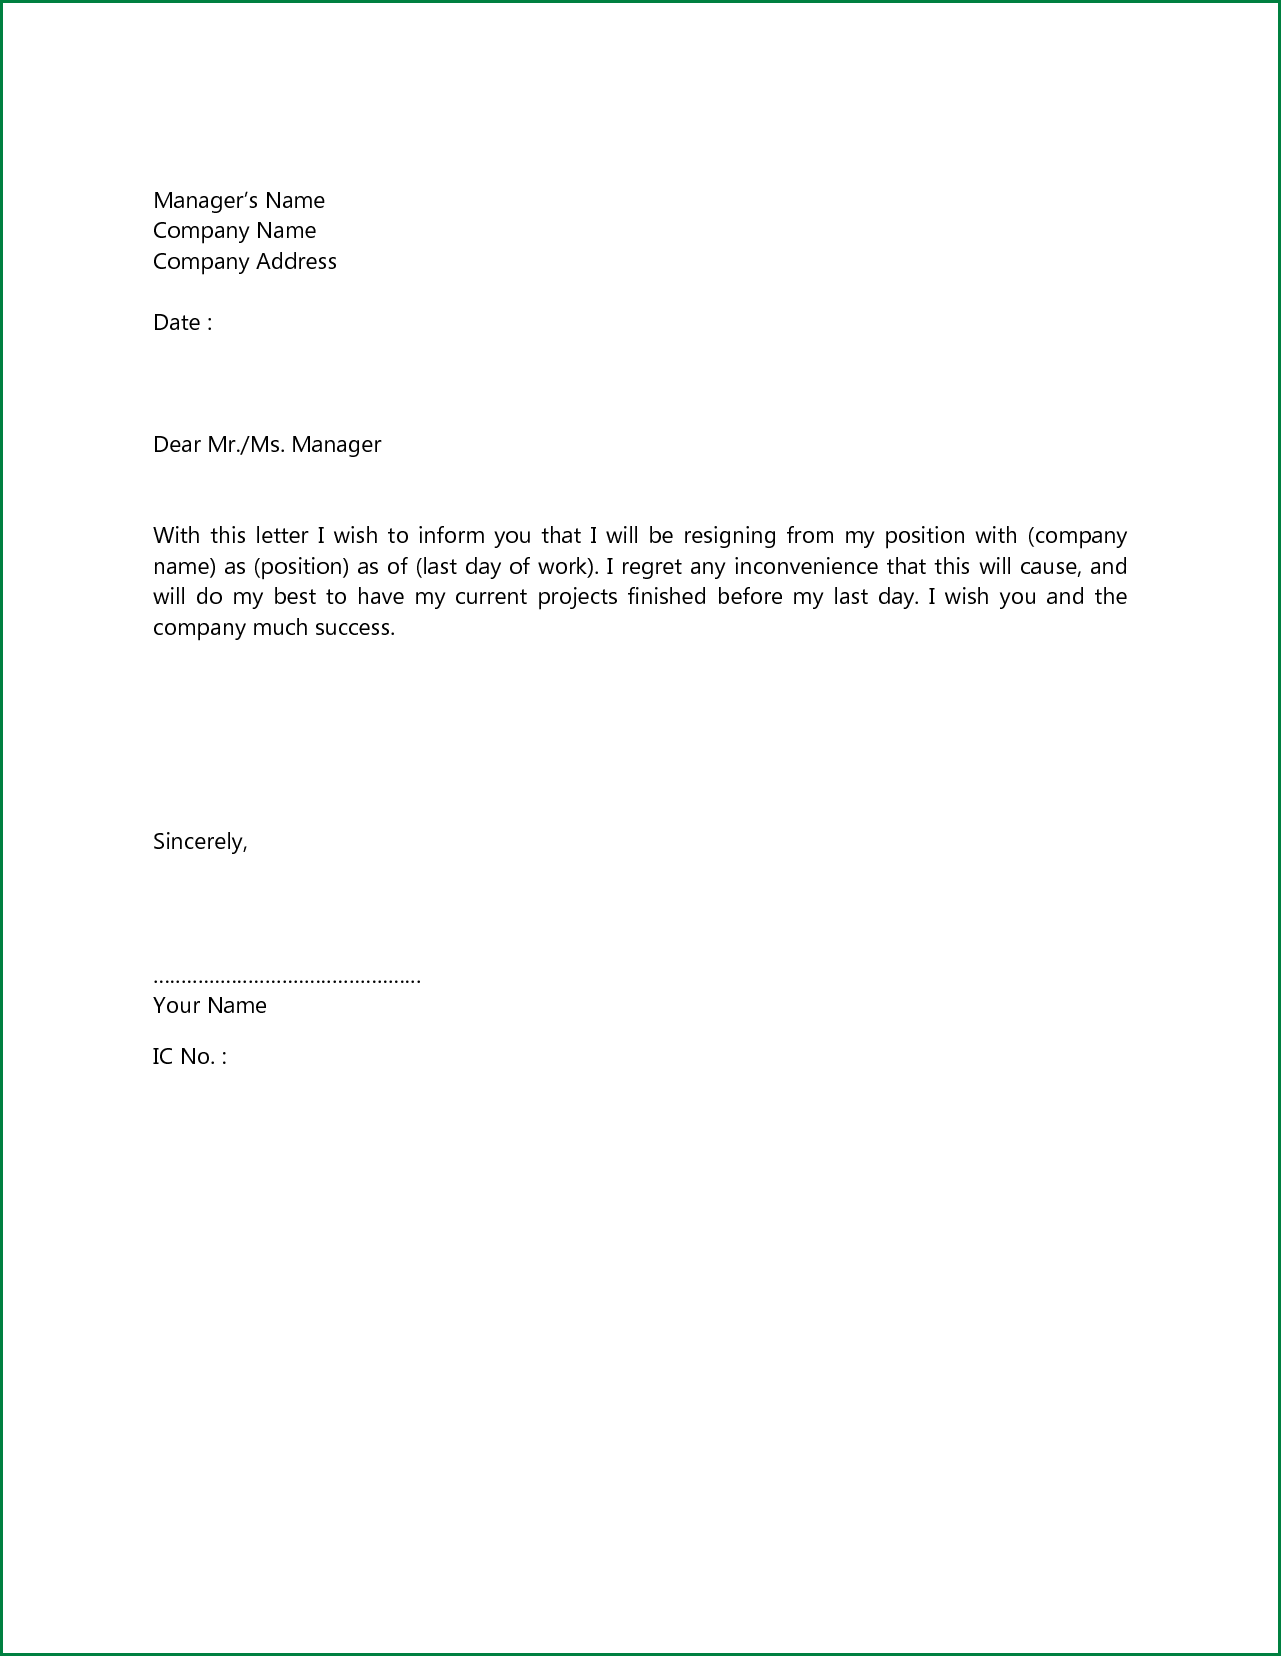 bfd56570c5ba6e7b60c94b7f4f102334 Short Application Cover Letters on easy example of business letter, application for employment letter, short application letter of interest, short business letter, short example of resume template, short examples of cover letters, long quotes in a business letter, short application letter sample, ho do i write a business letter, example of job application letter,